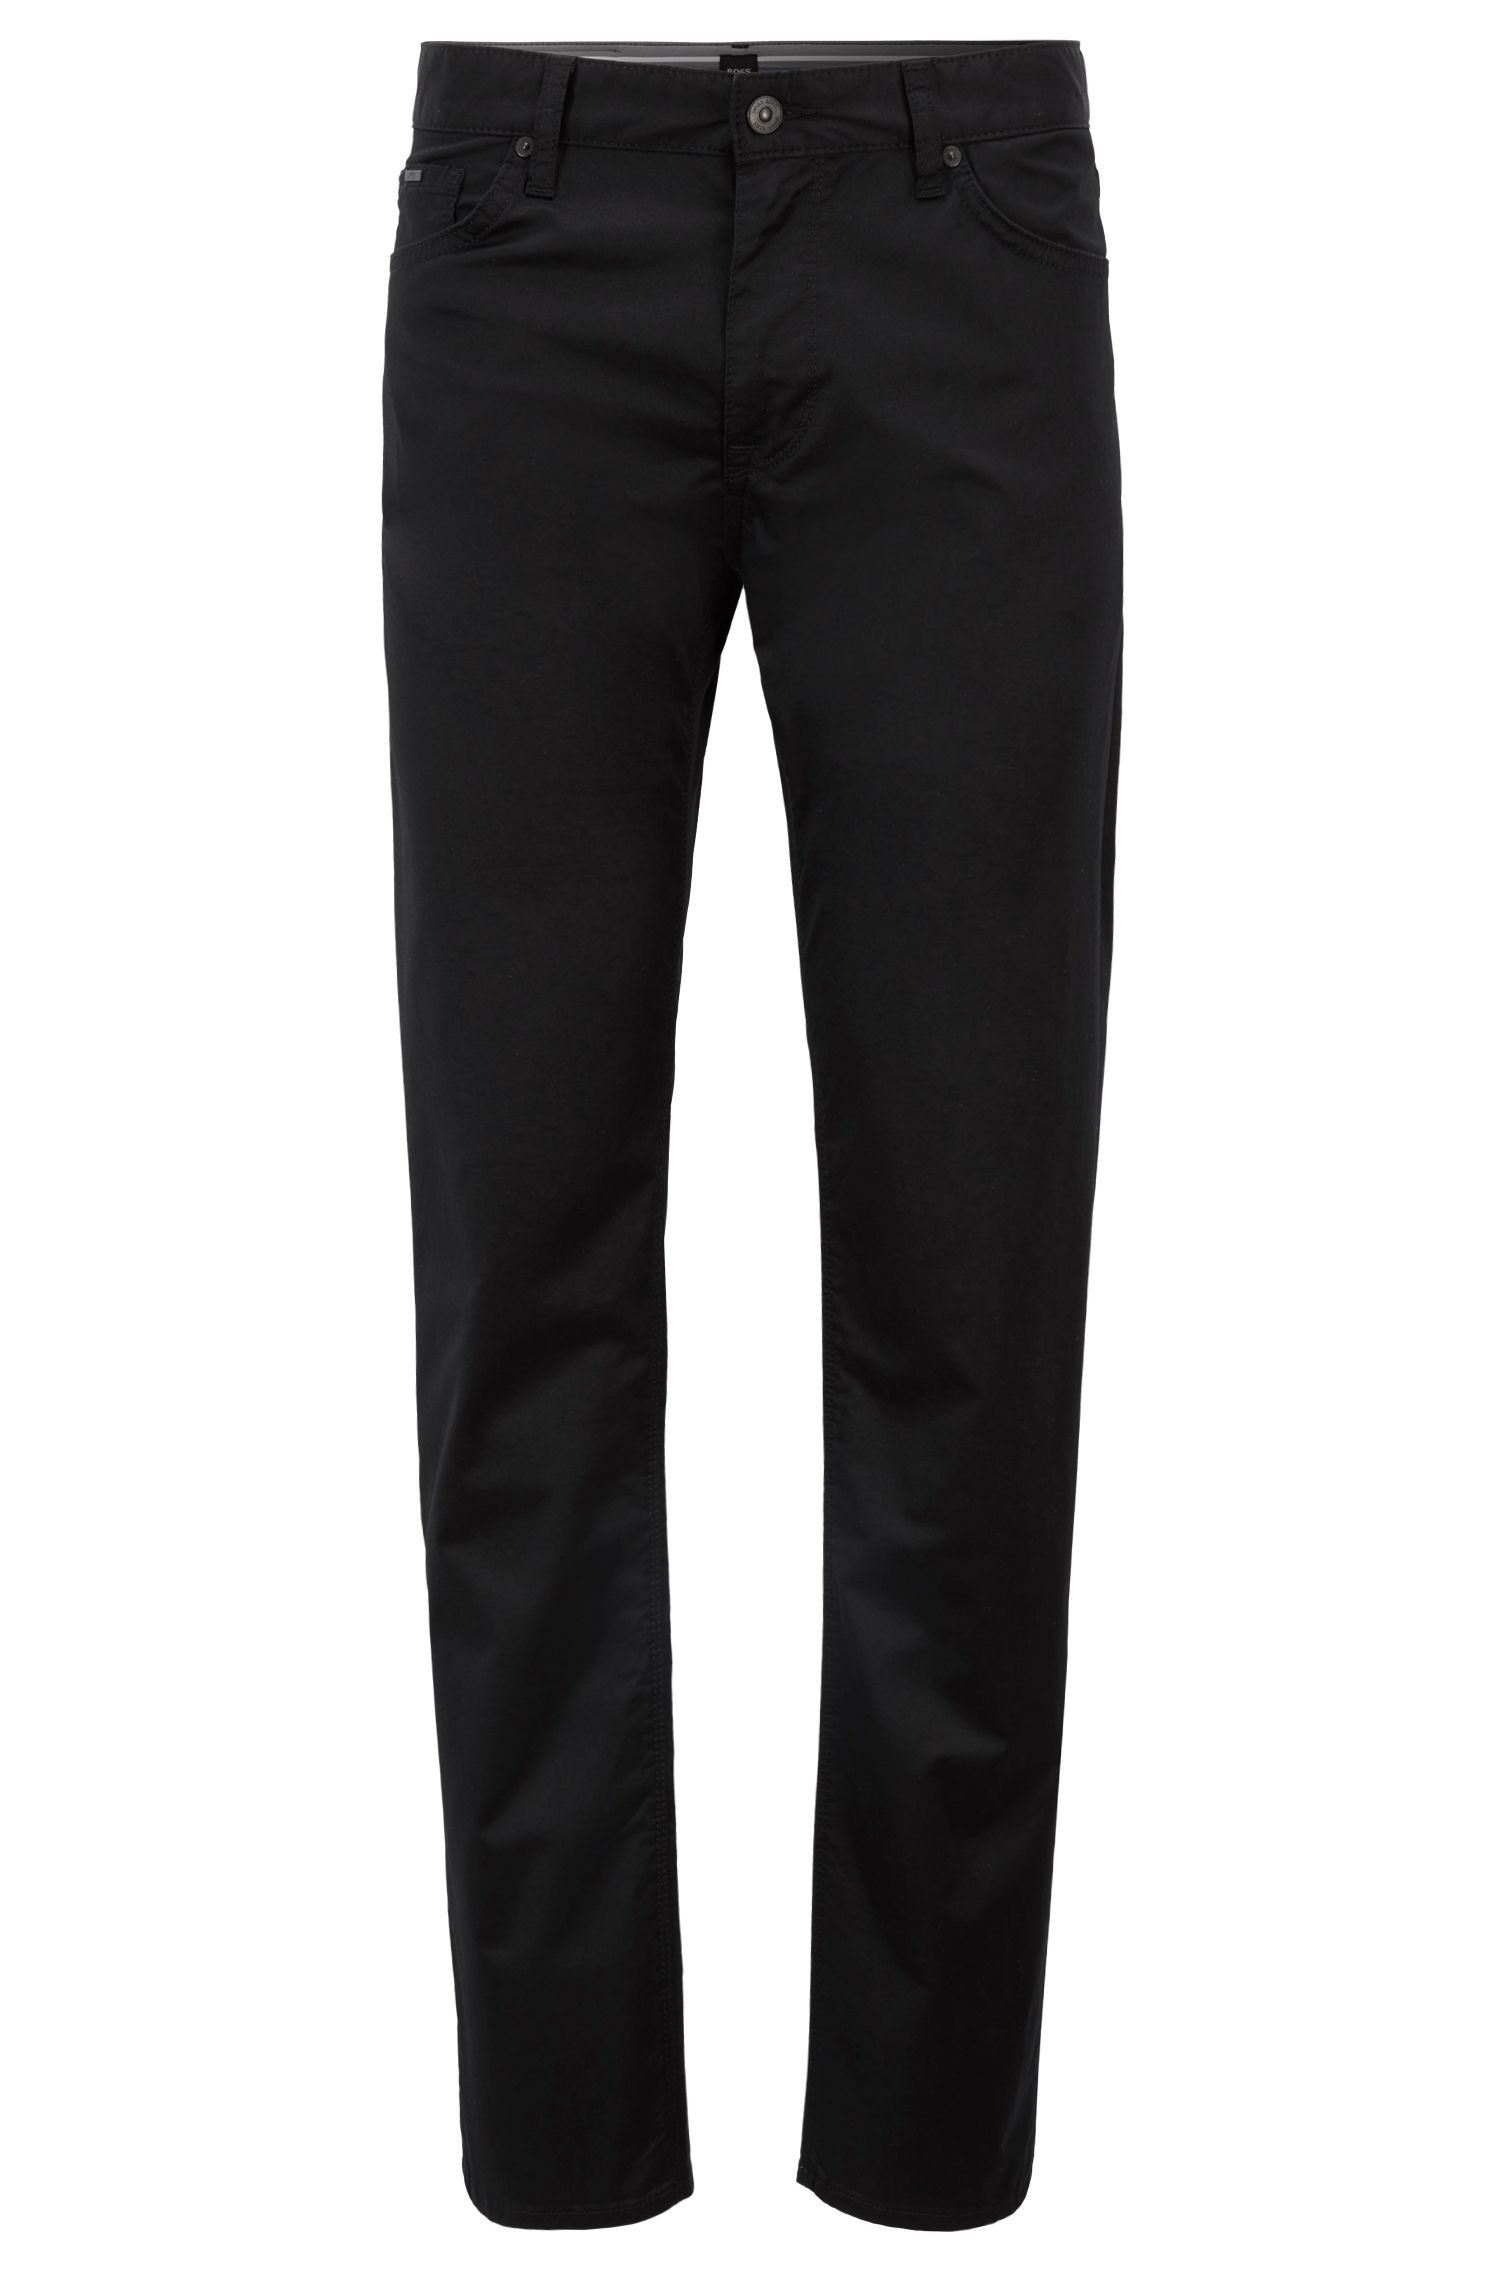 Regular-fit jeans in satin-finish stretch cotton, Black